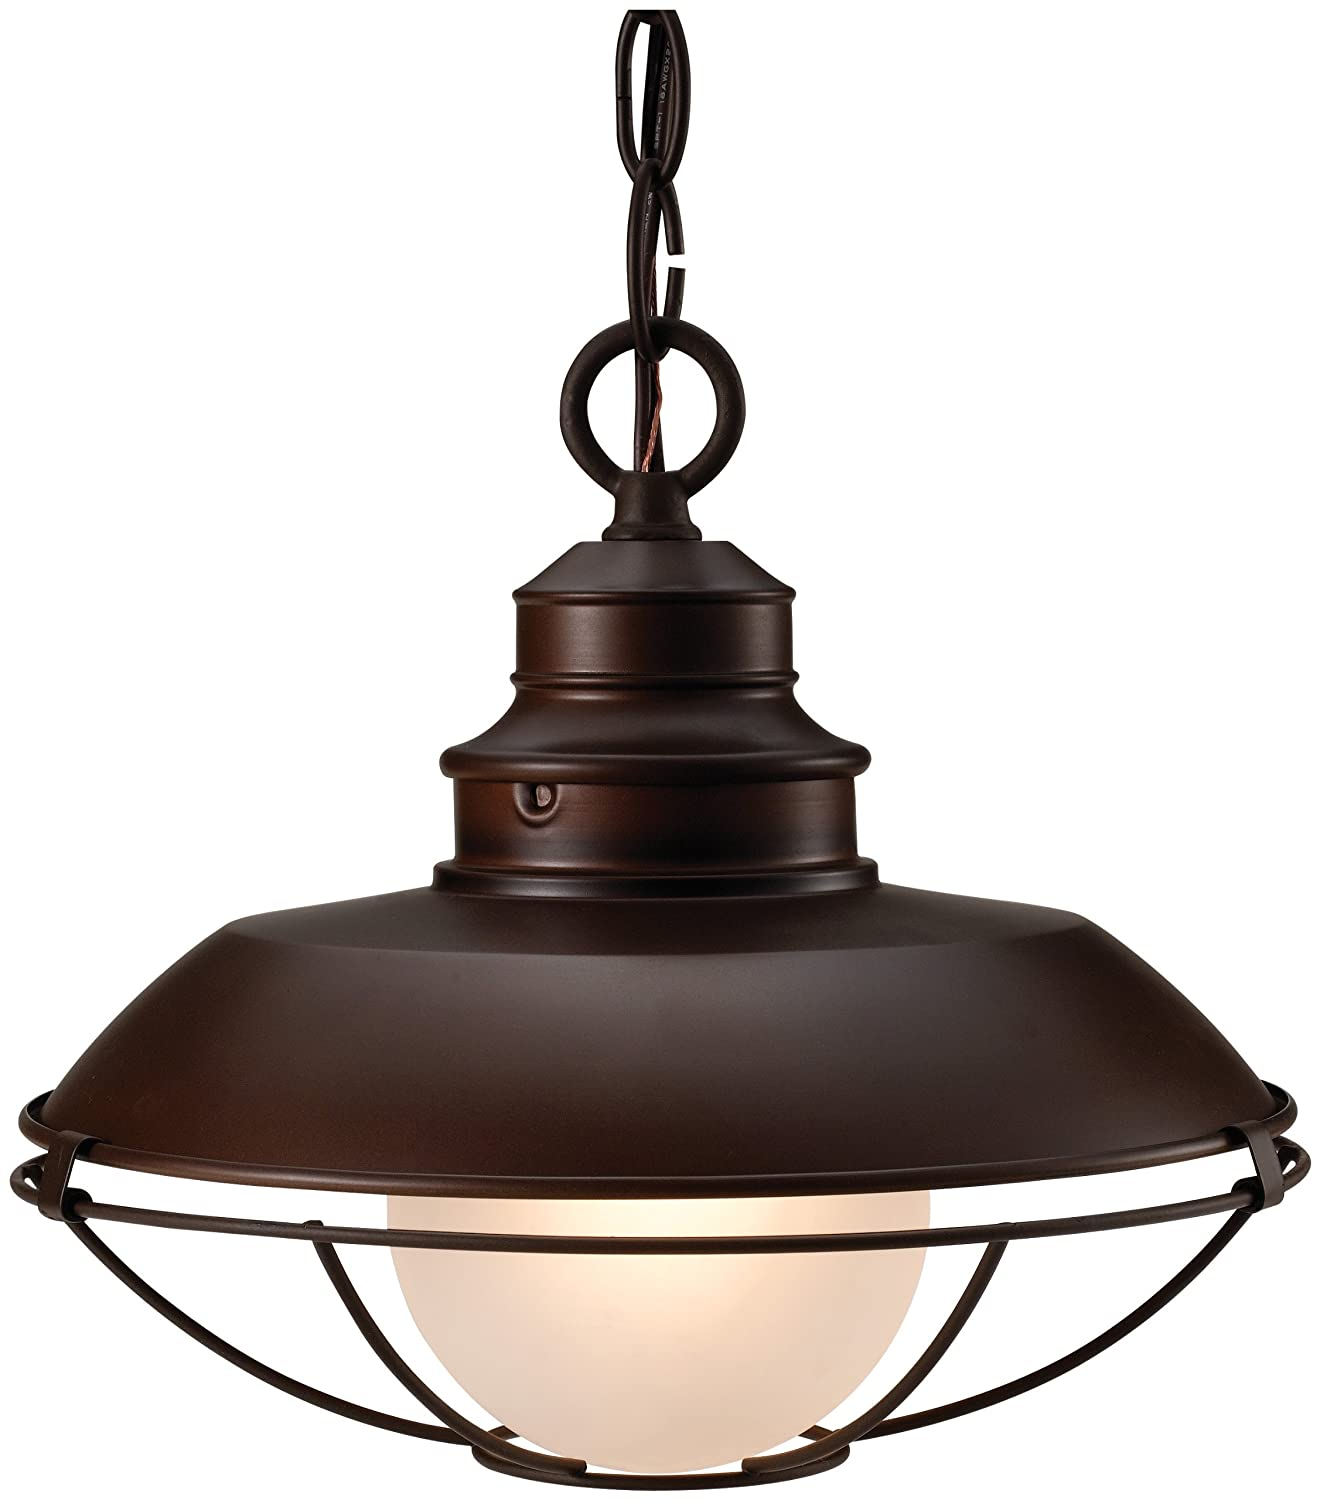 Light Down Hanging Fixture Vintage Ceiling Barn Style